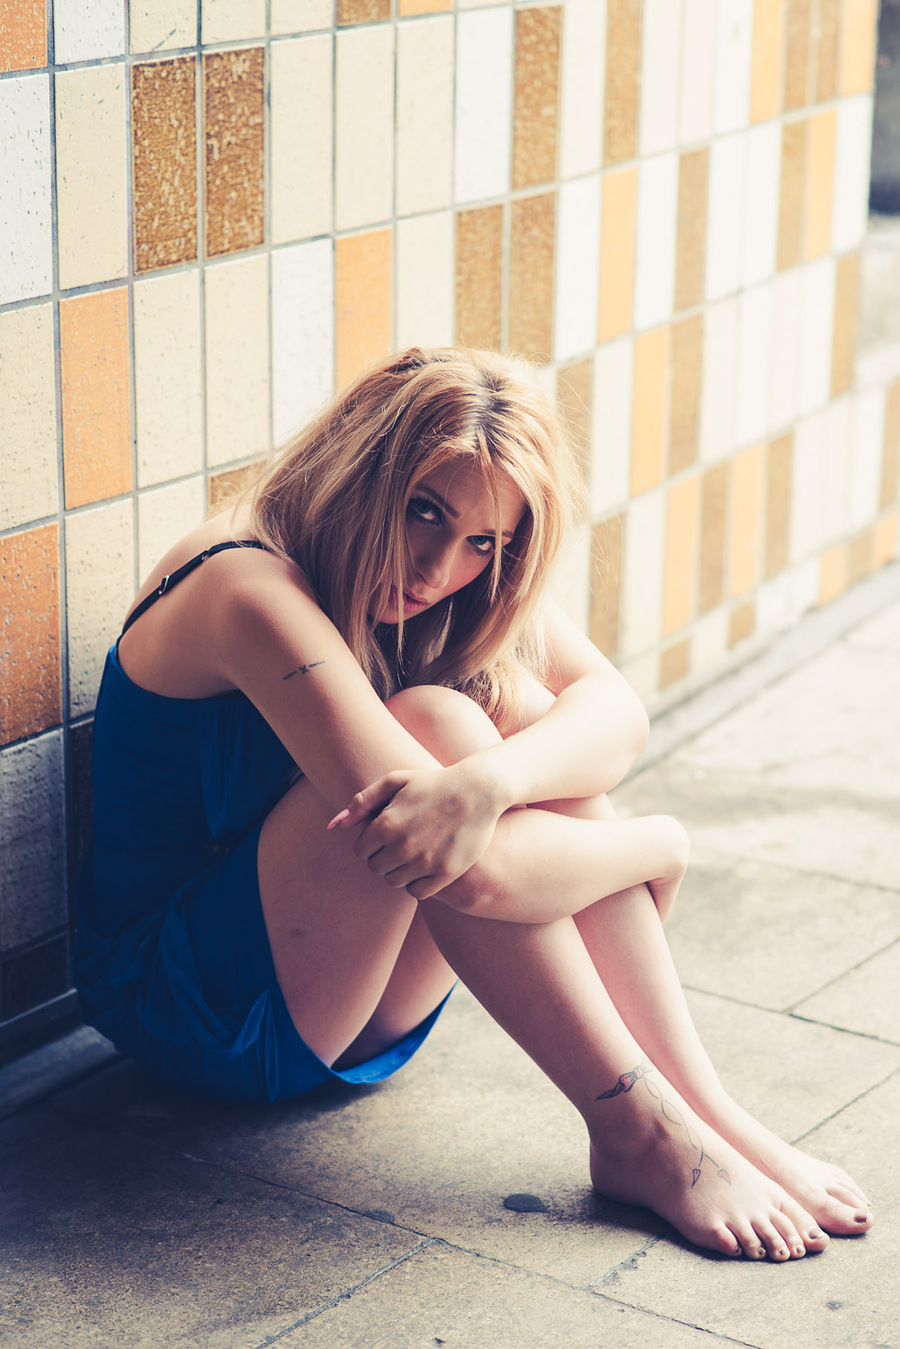 Alone.... / Photography by fossiec, Model Anna-model24 / Uploaded 17th July 2015 @ 12:48 PM